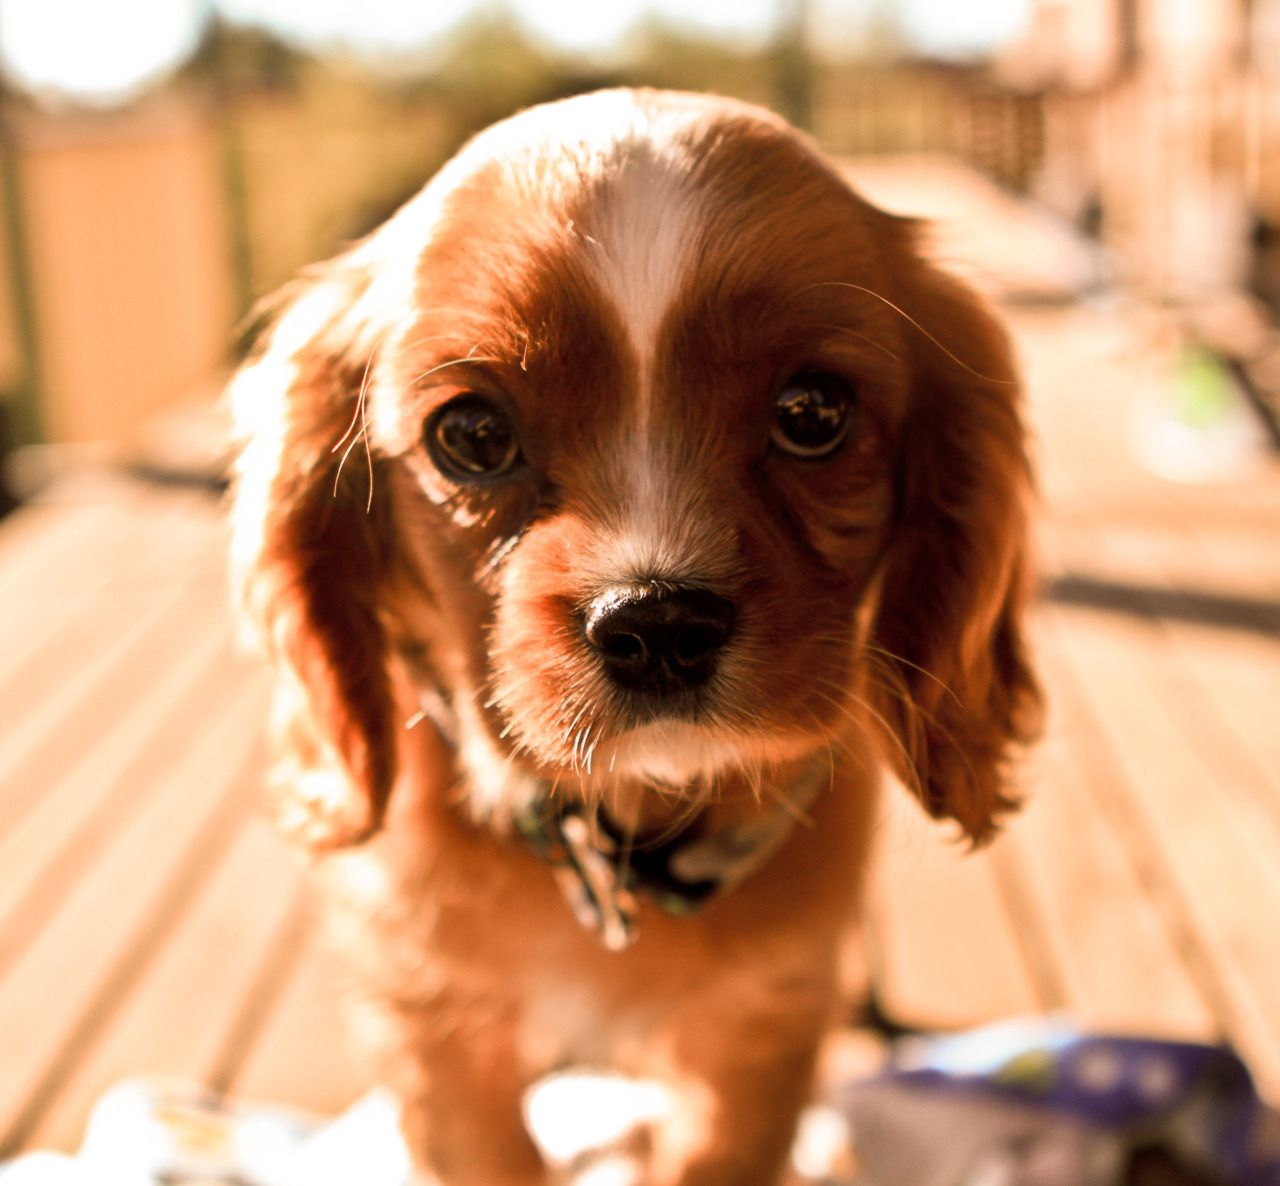 That Face It Gets Me Every Time Love Those Cavaliers Cute